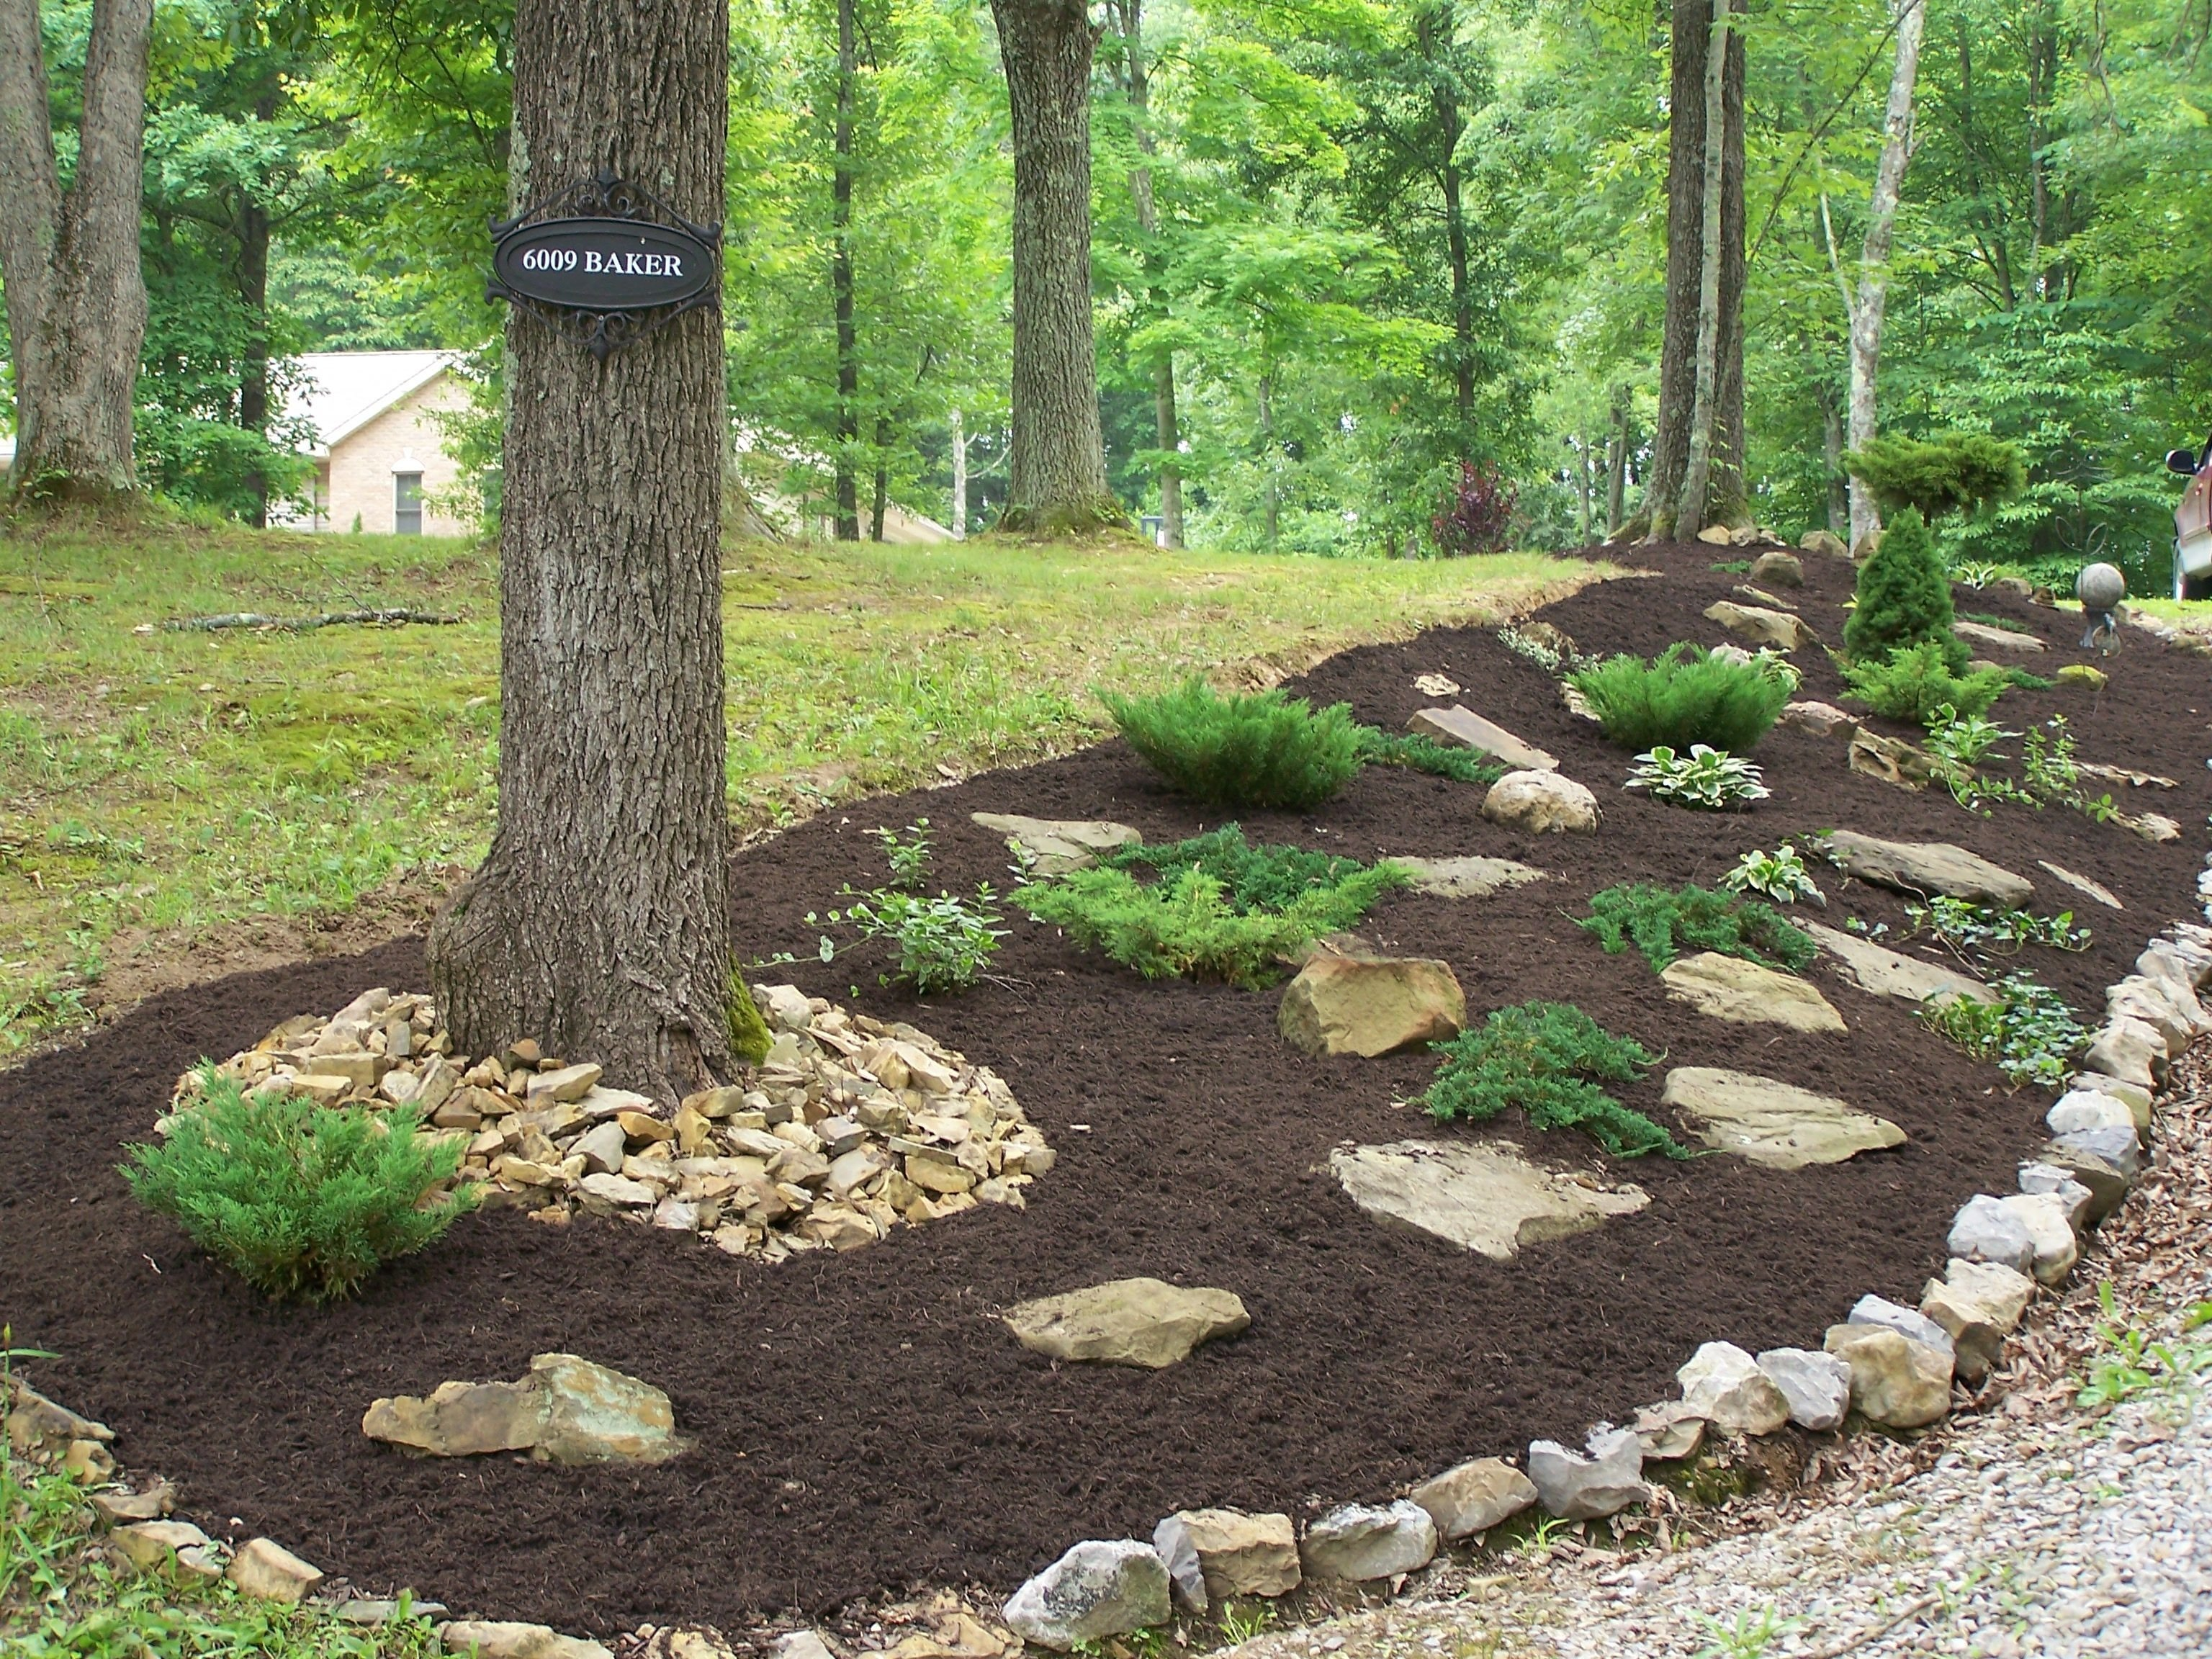 10 Lovable Landscape Ideas For A Slope creative fencing on a hillside backyard landscaping for perfect 2021